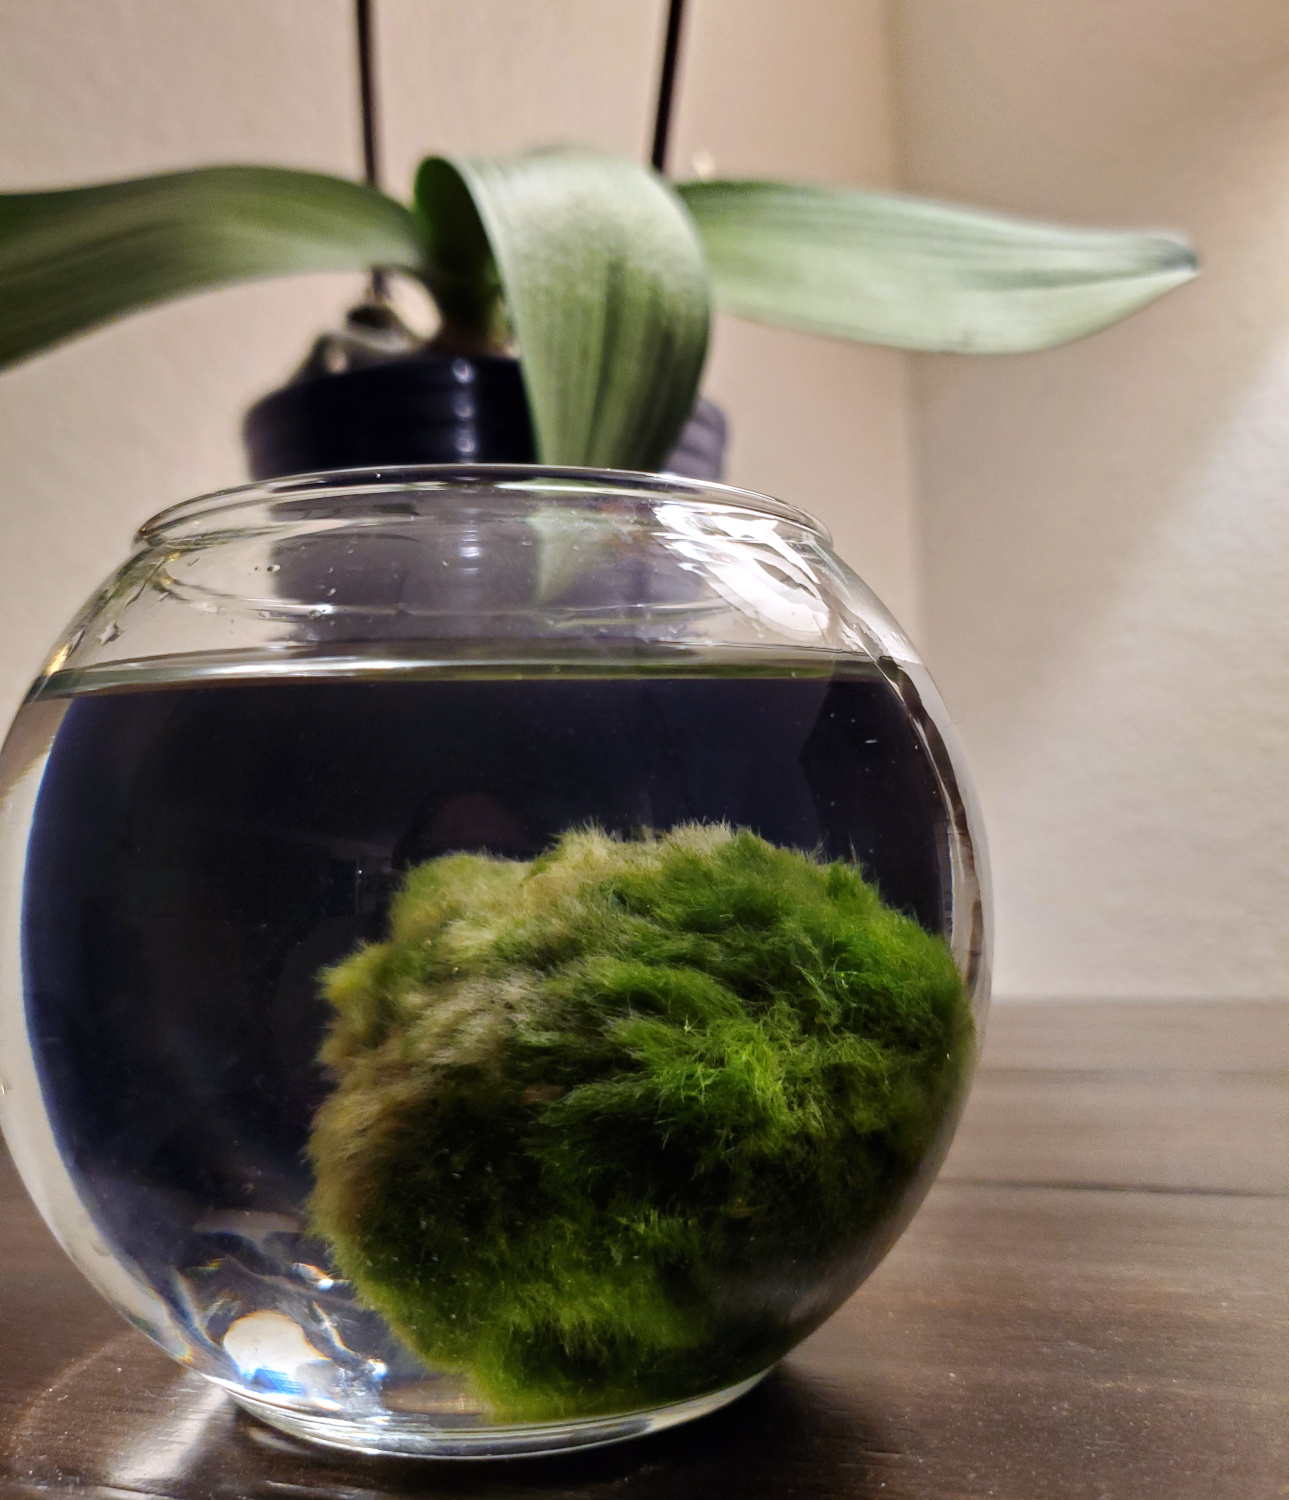 A marimo moss ball in a glass jar, fully of happy and filtered water